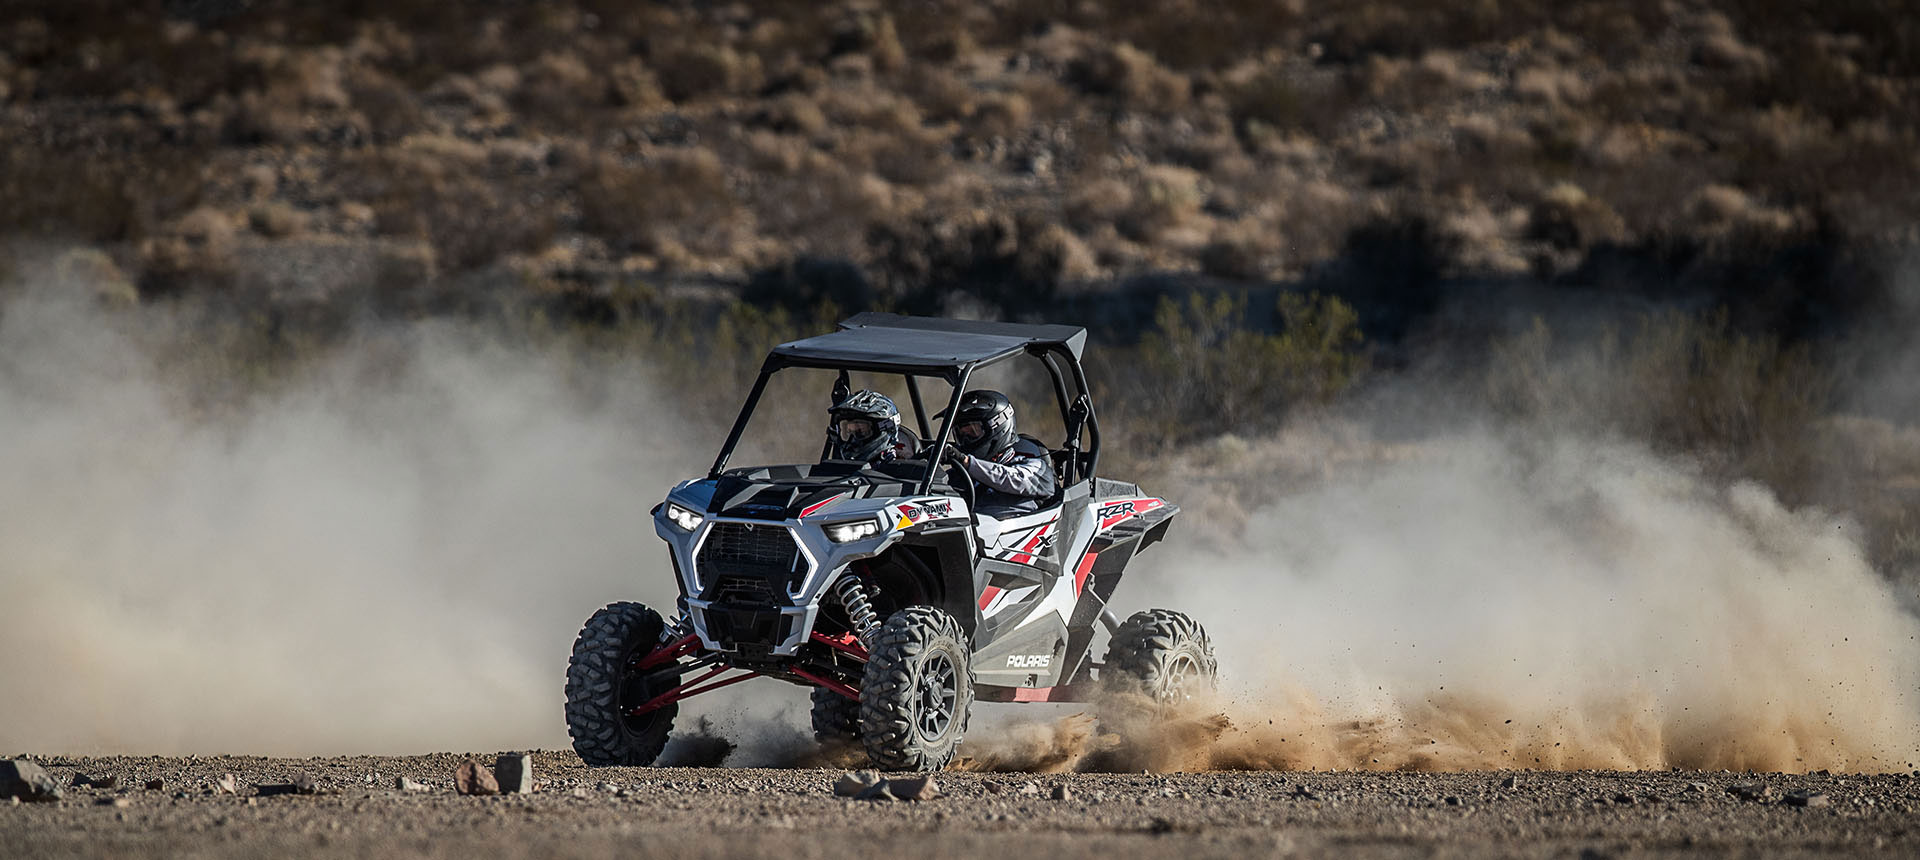 2019 Polaris RZR XP 1000 in Santa Maria, California - Photo 7